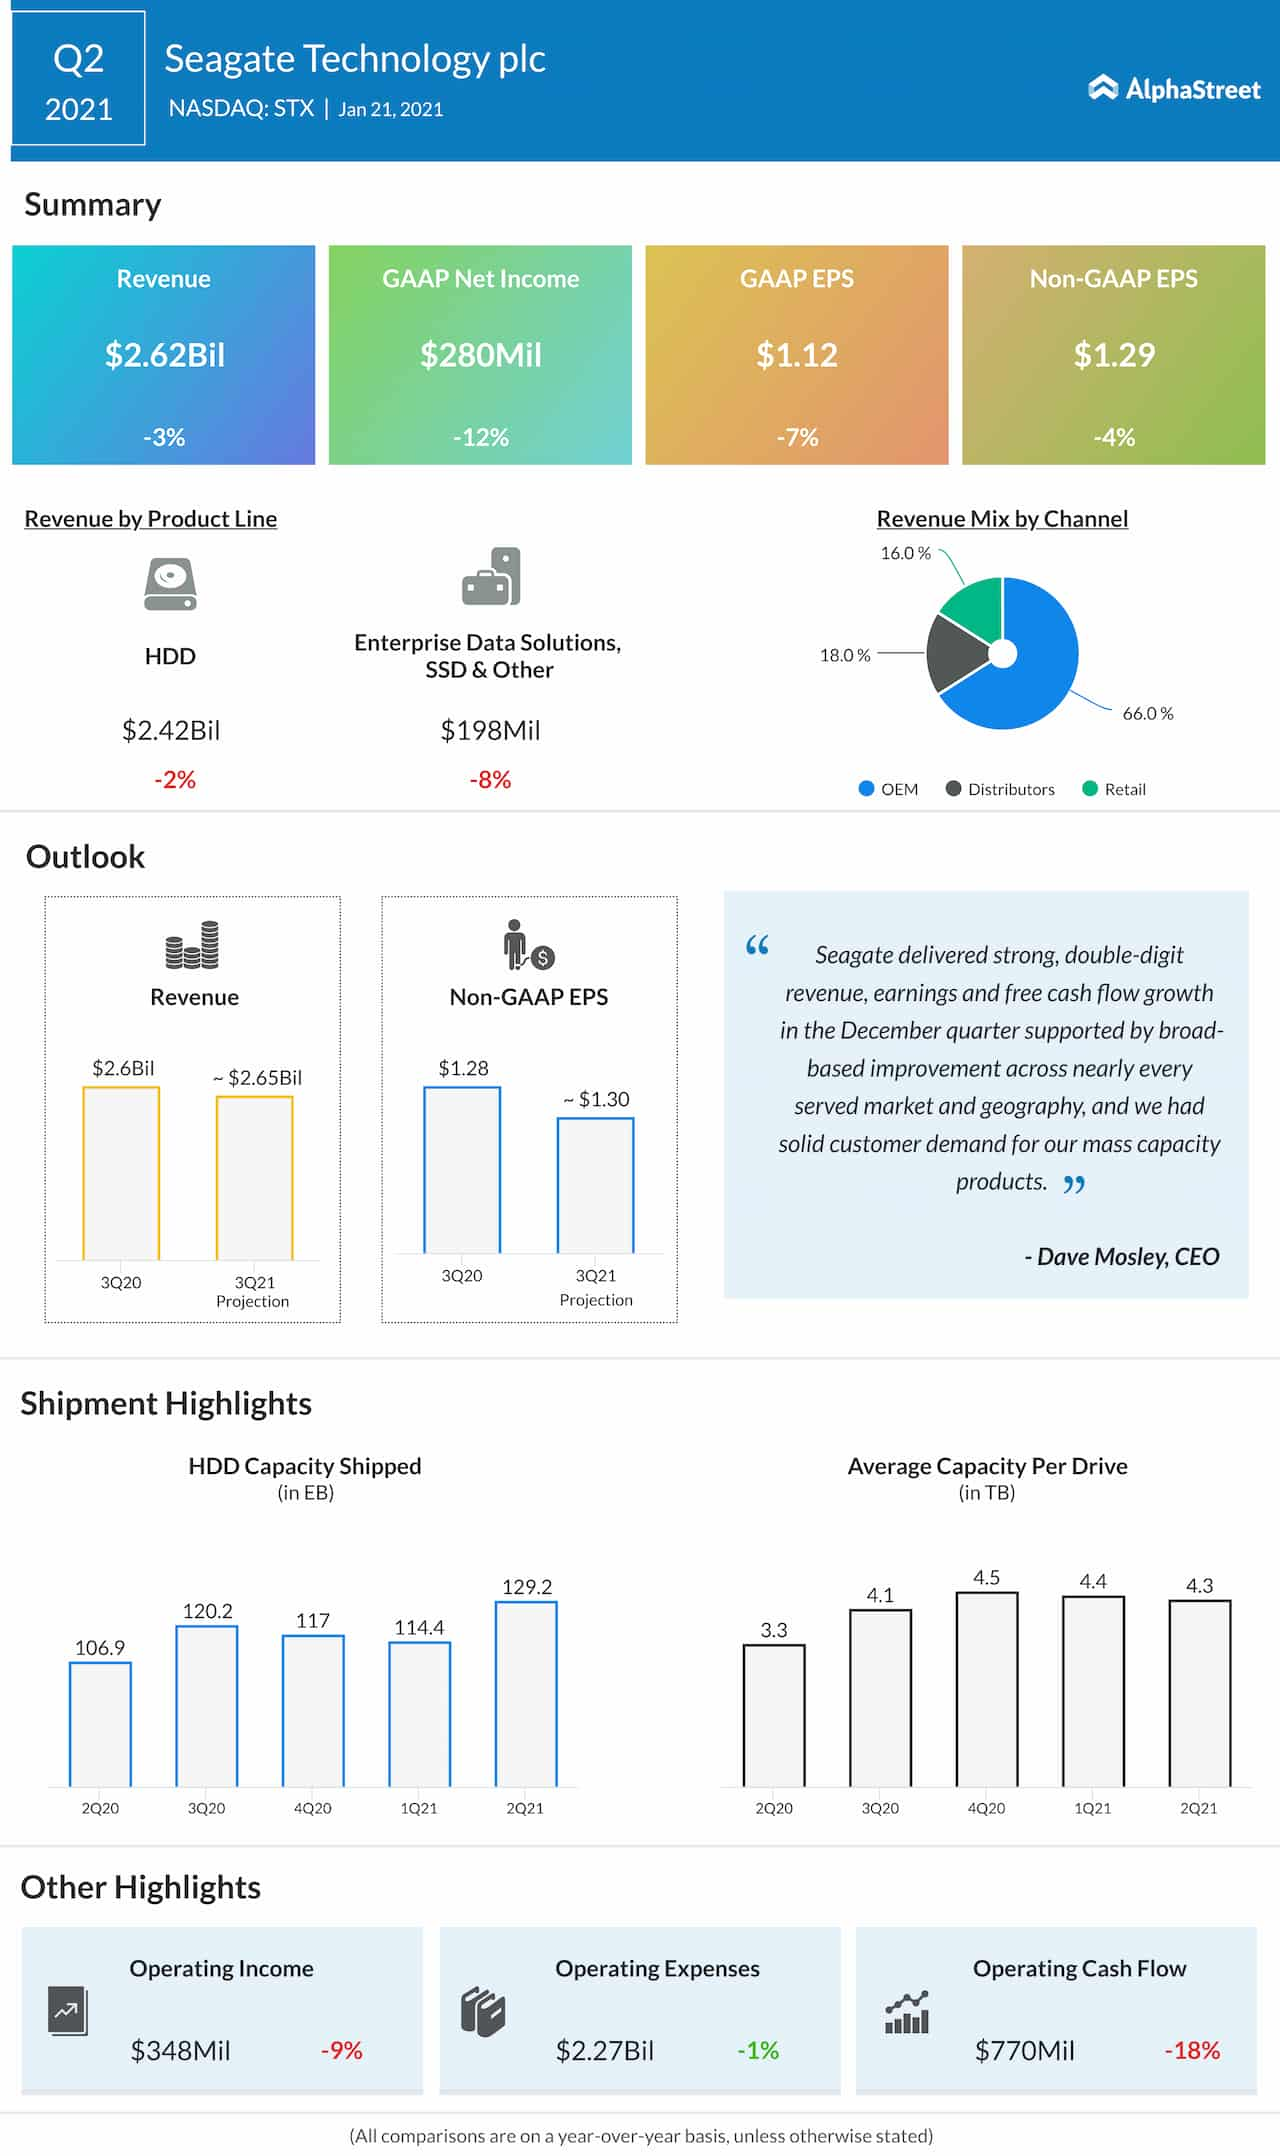 Seagate Technology Q2 2021 earnings infographic